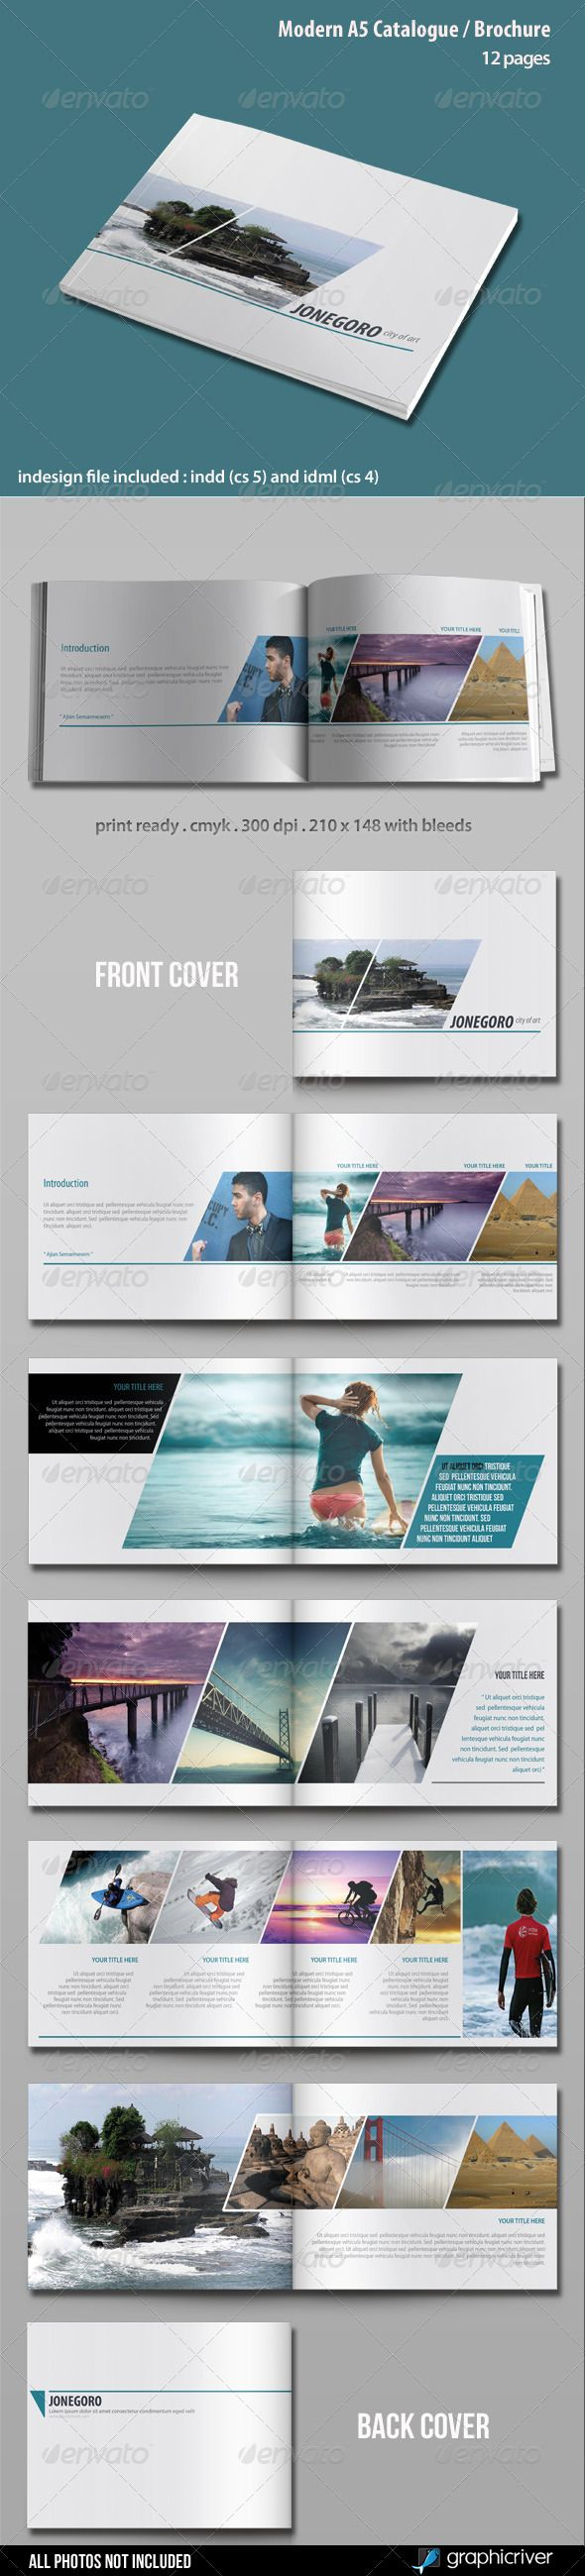 how to create a booklet in indesign cc